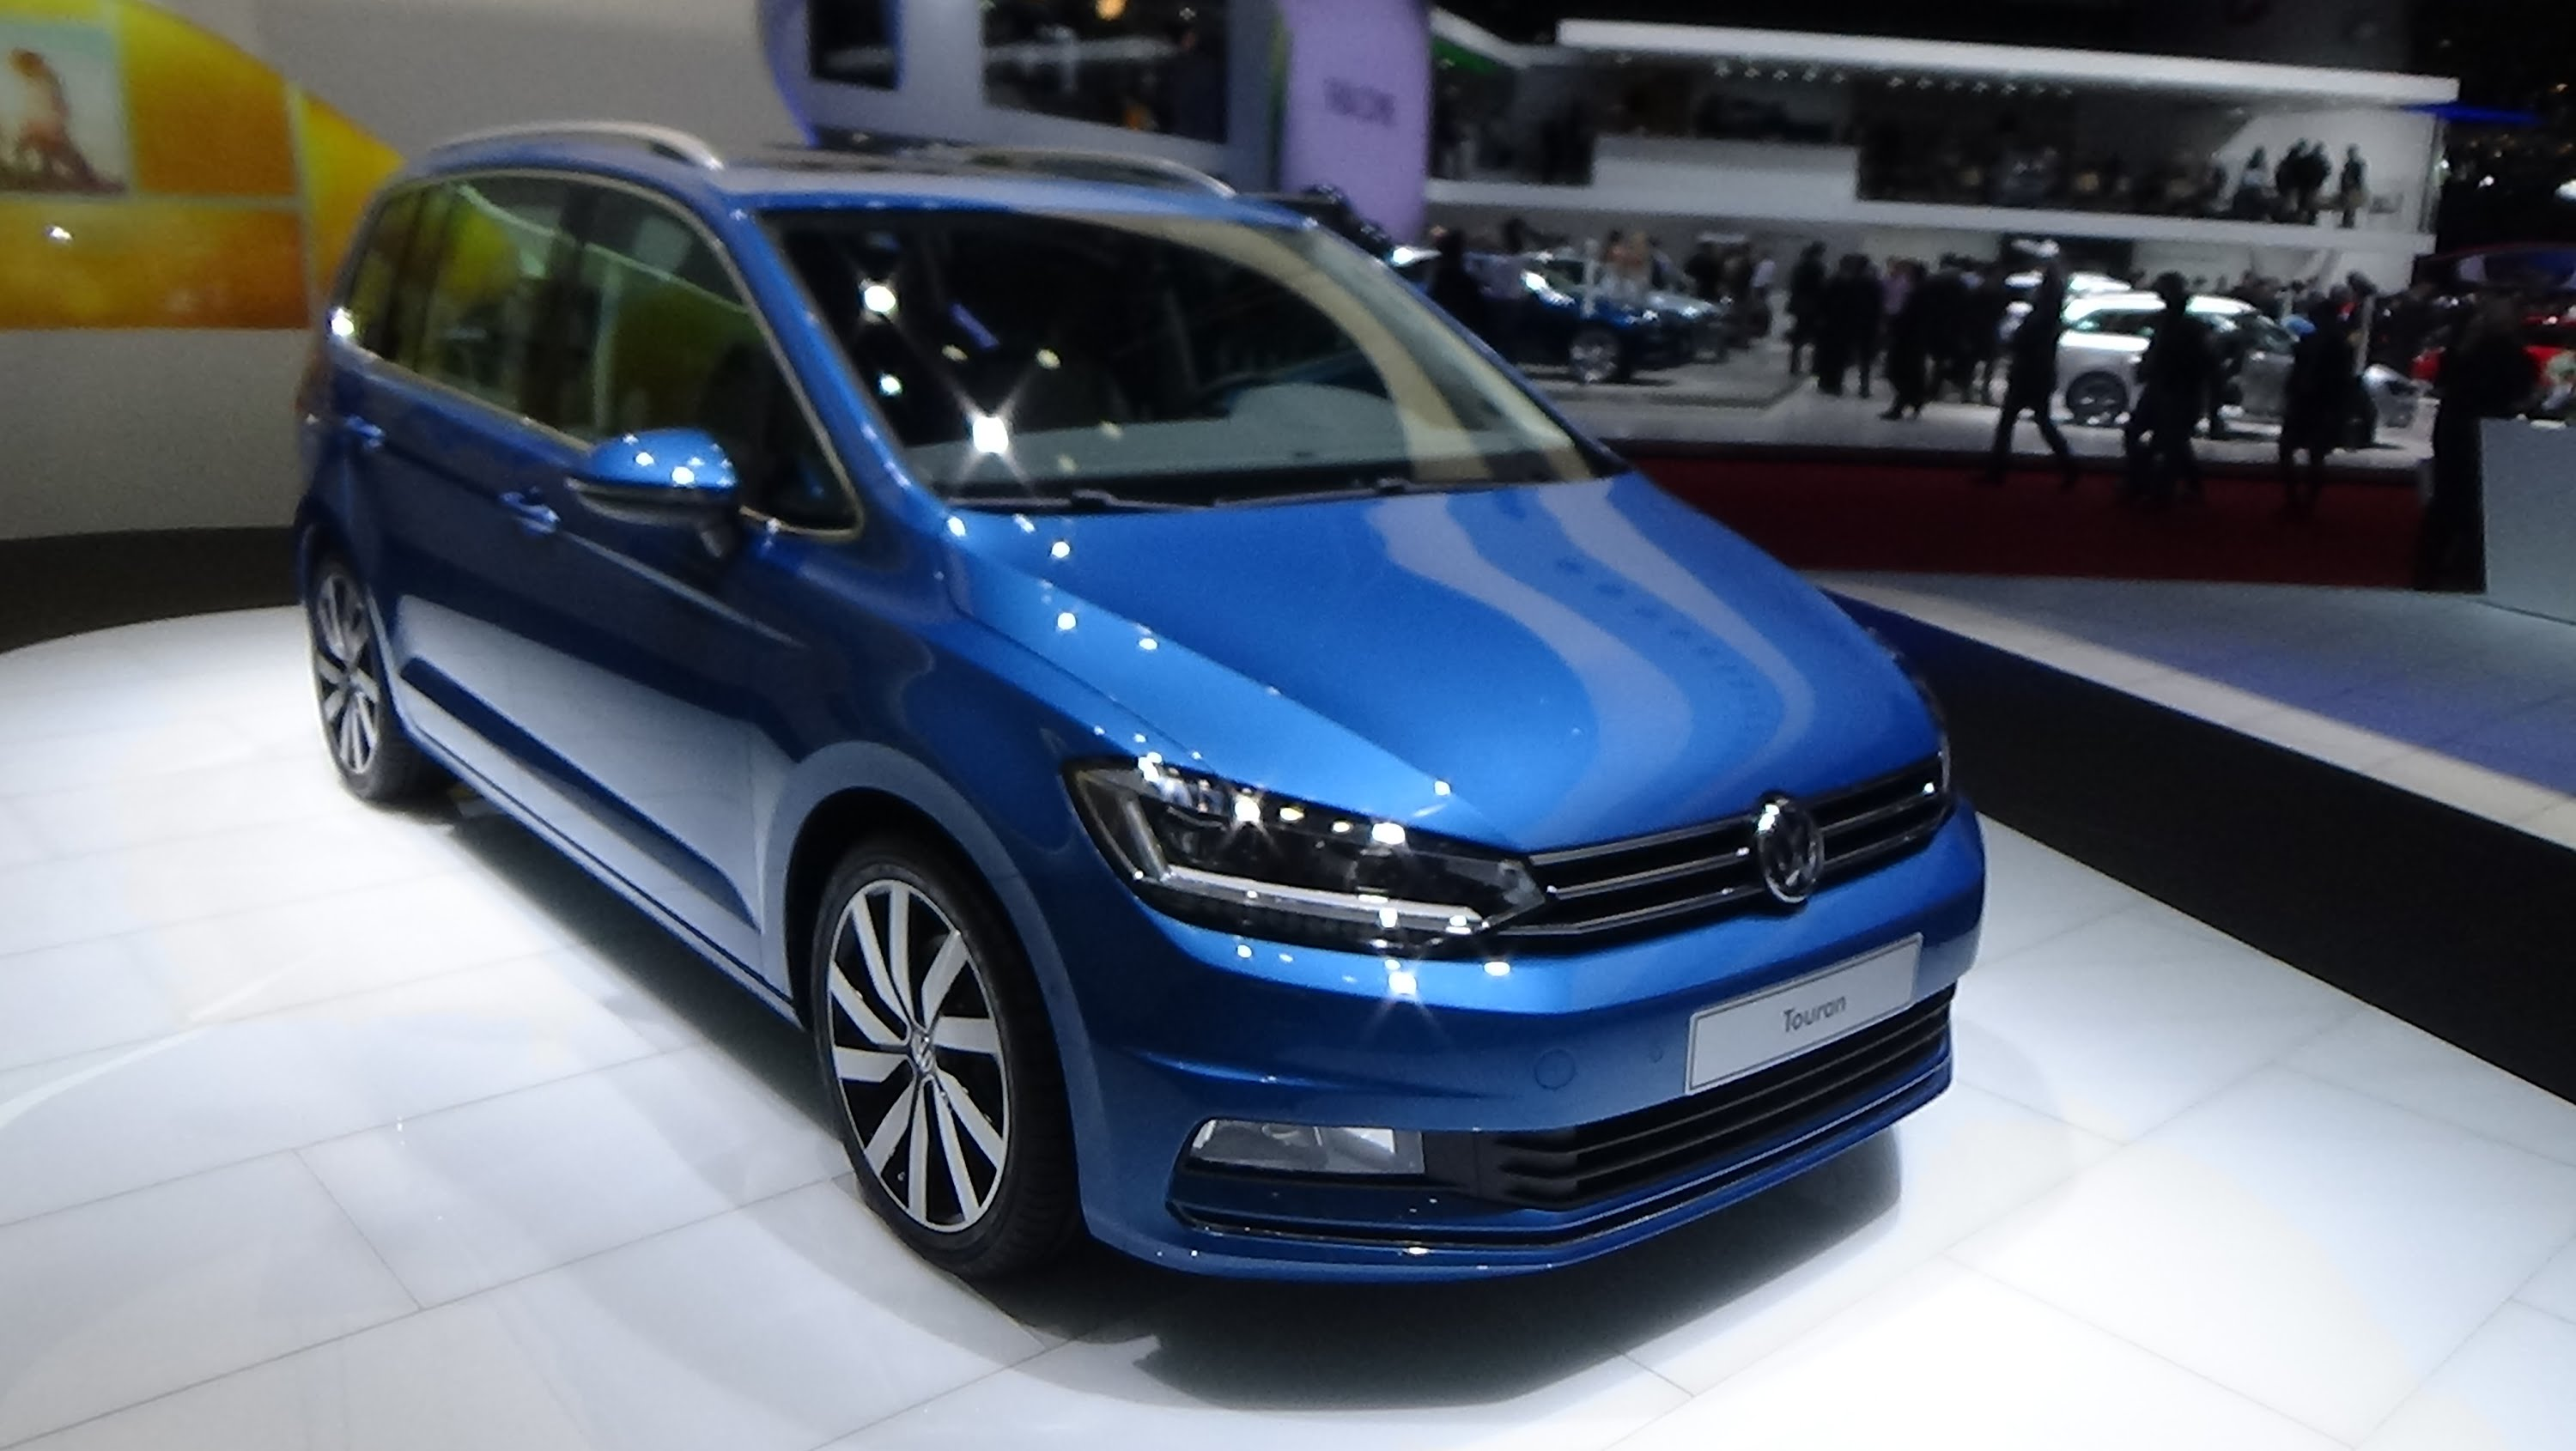 2016 volkswagen touran 1t pictures information and specs auto. Black Bedroom Furniture Sets. Home Design Ideas